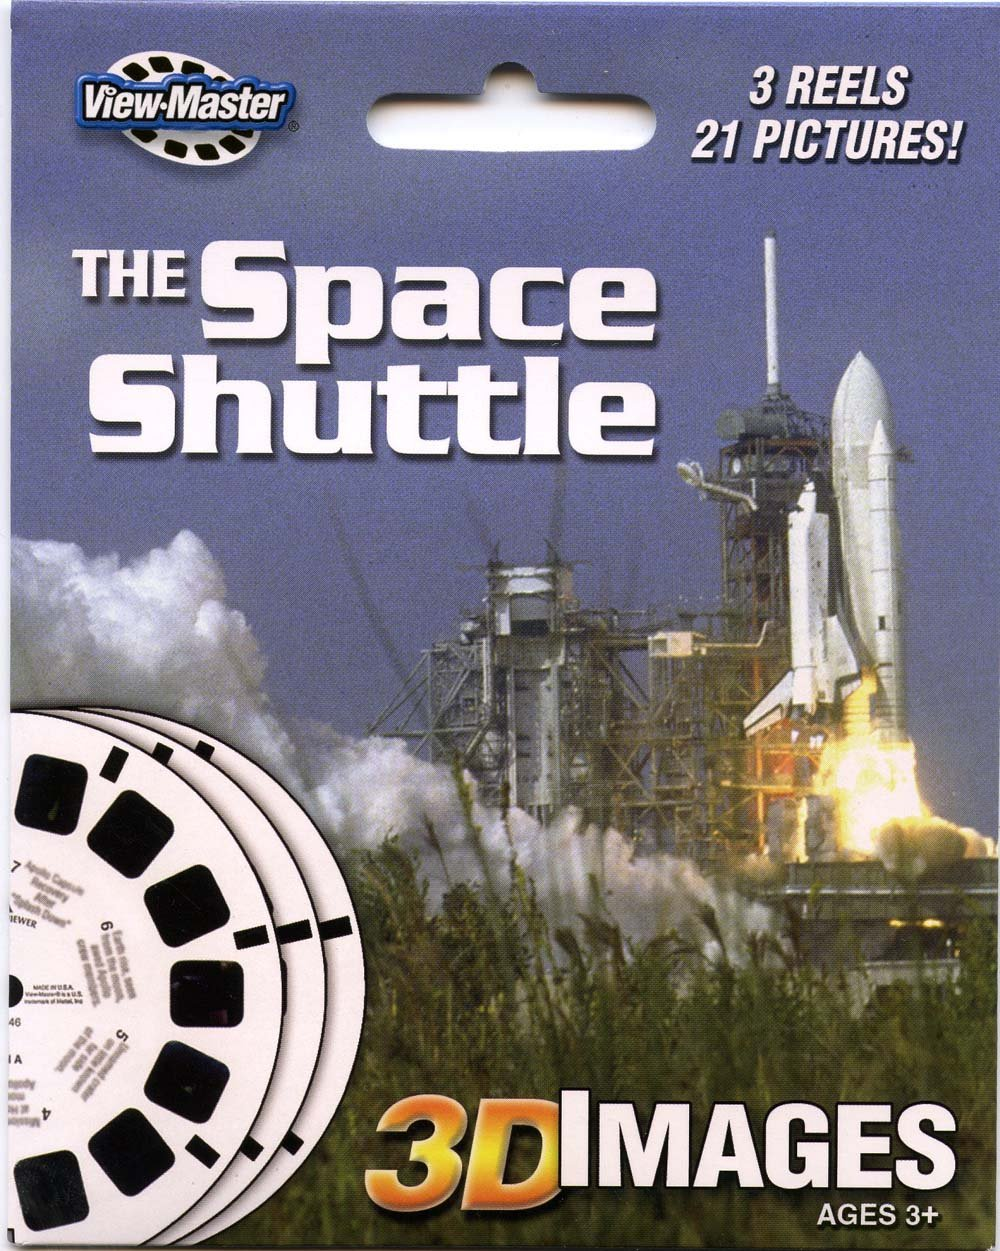 ViewMaster 3Reel Set - The Space Shuttle - 21 3D Images by 3Dstereo ViewMaster